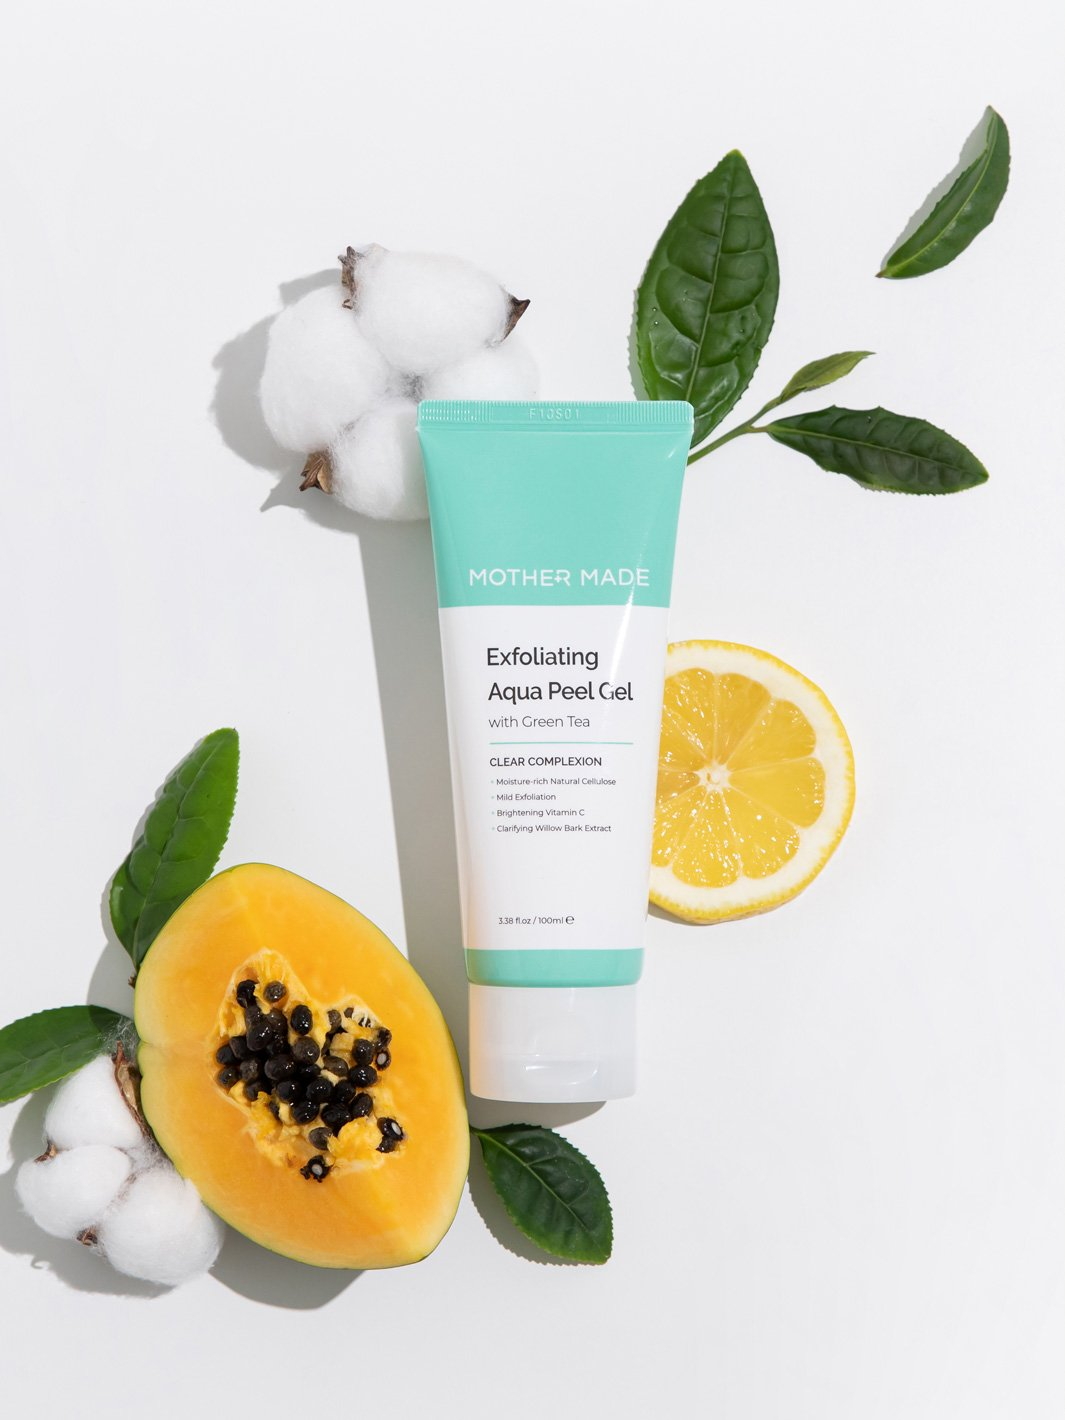 Exfoliating Aqua Peel Gel with Green Tea - MOTHER MADE